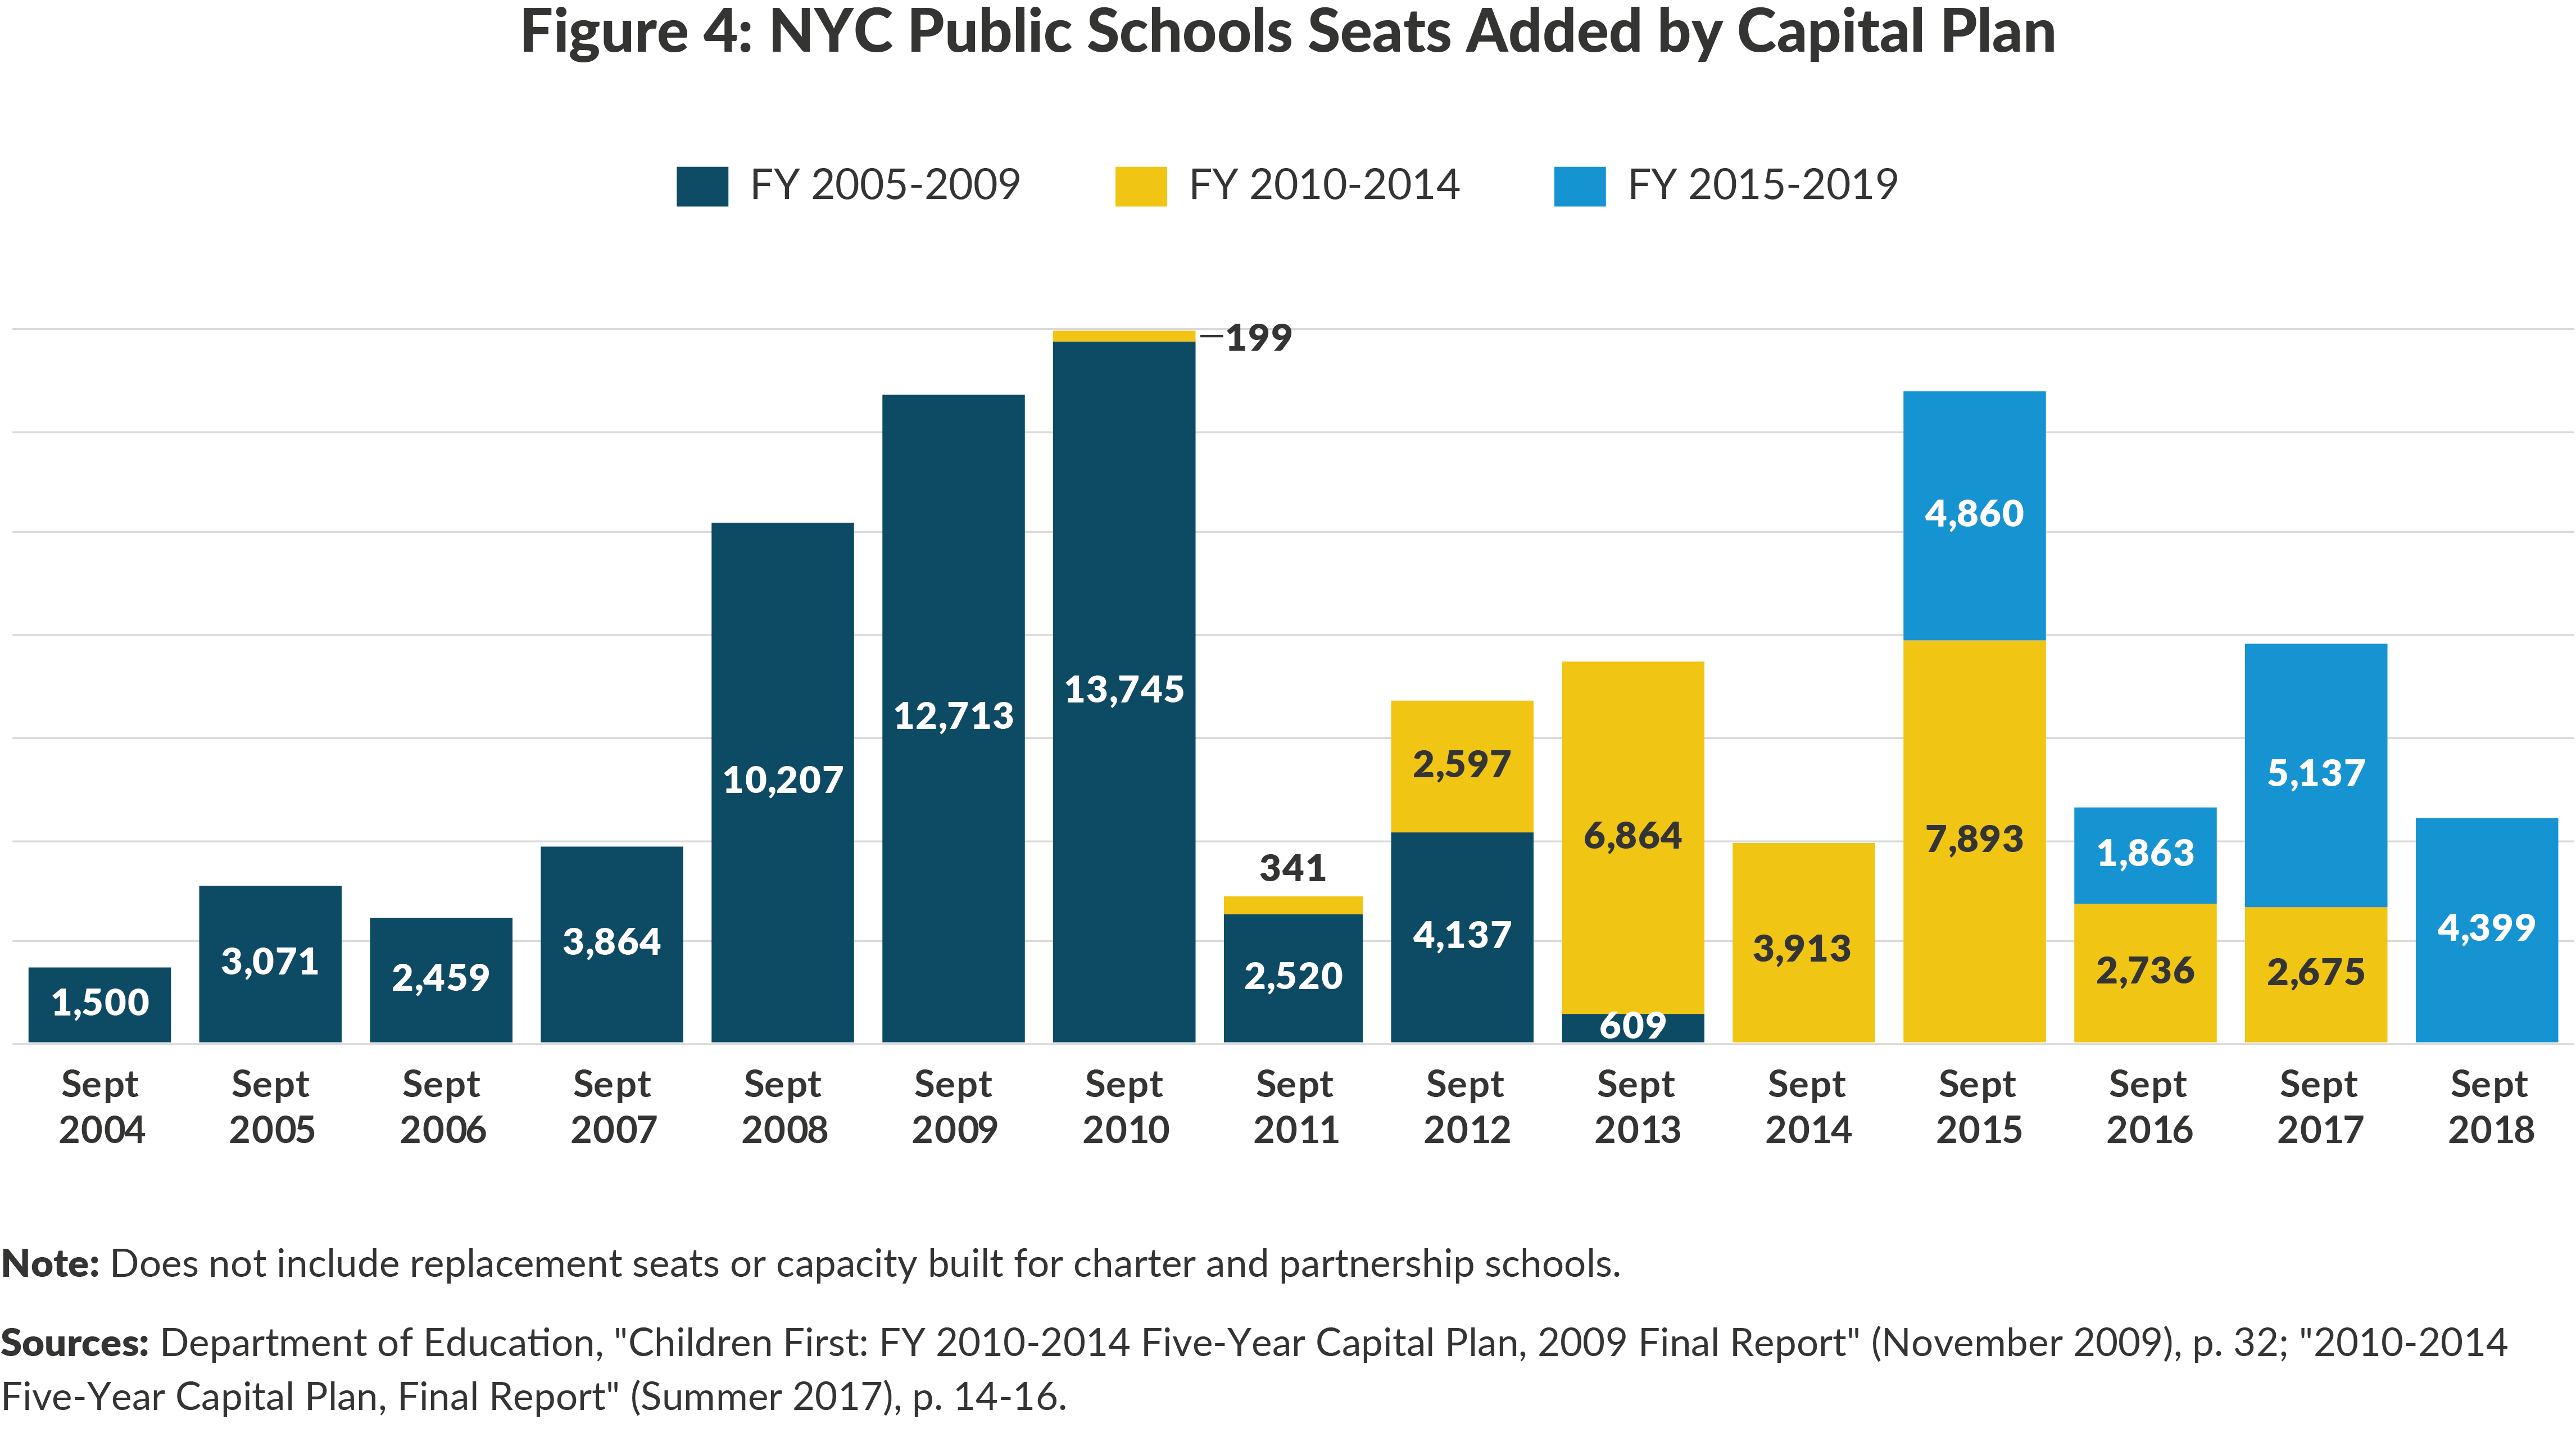 Figure 4: NYC Public Schools Seats Added by Capital Plan